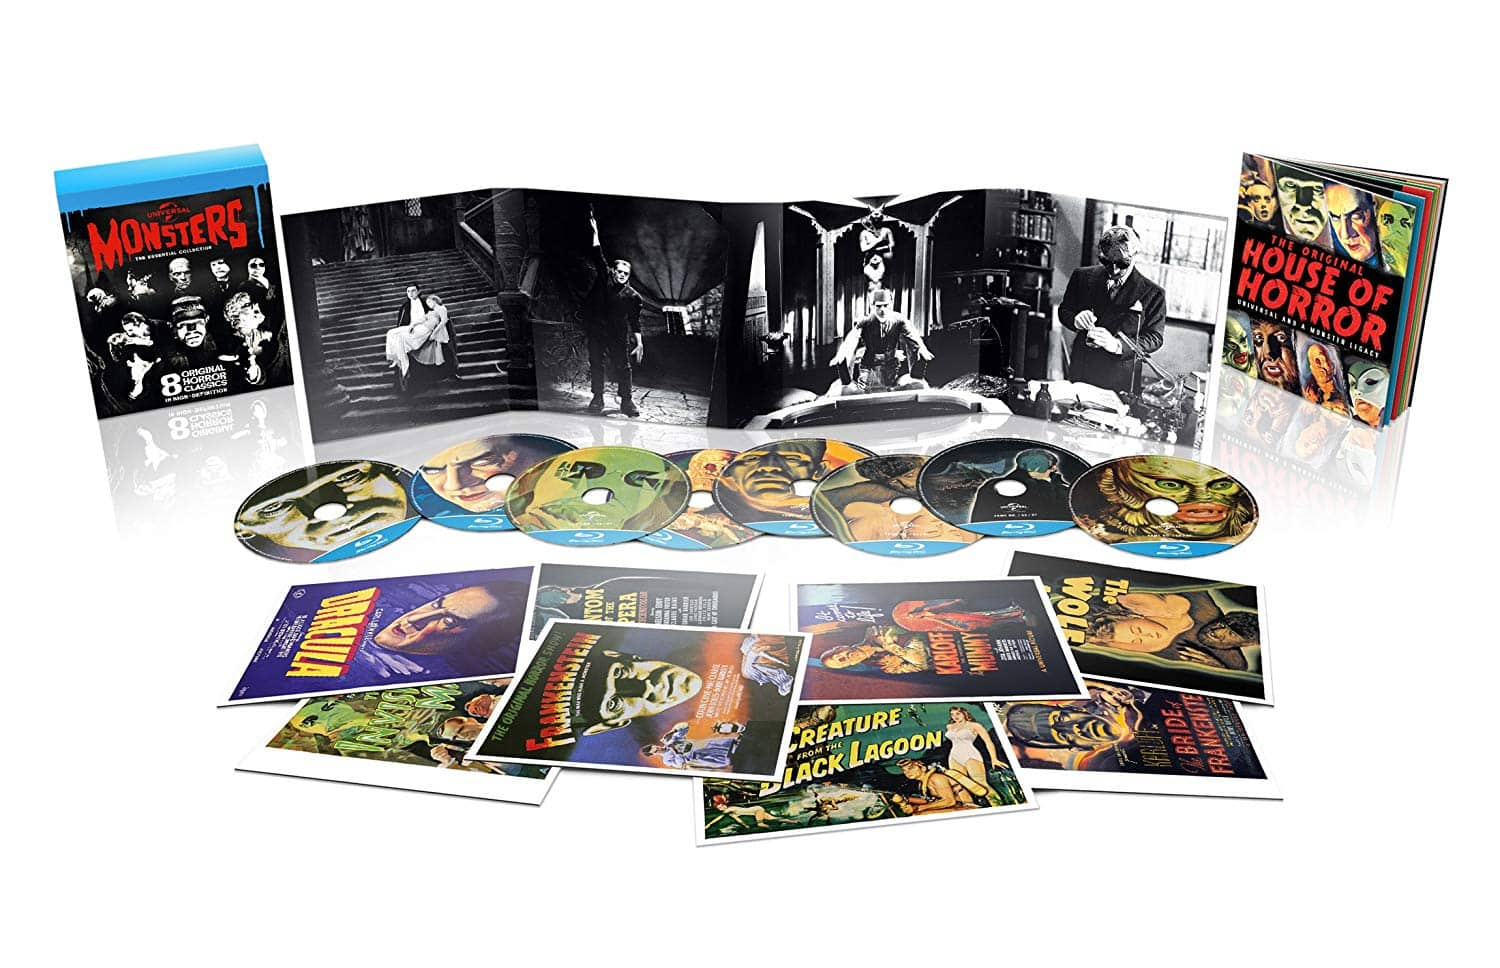 Universal Monsters: The Essential Collection (8-Disc Region Free Blu-ray) $16.98 Shipped